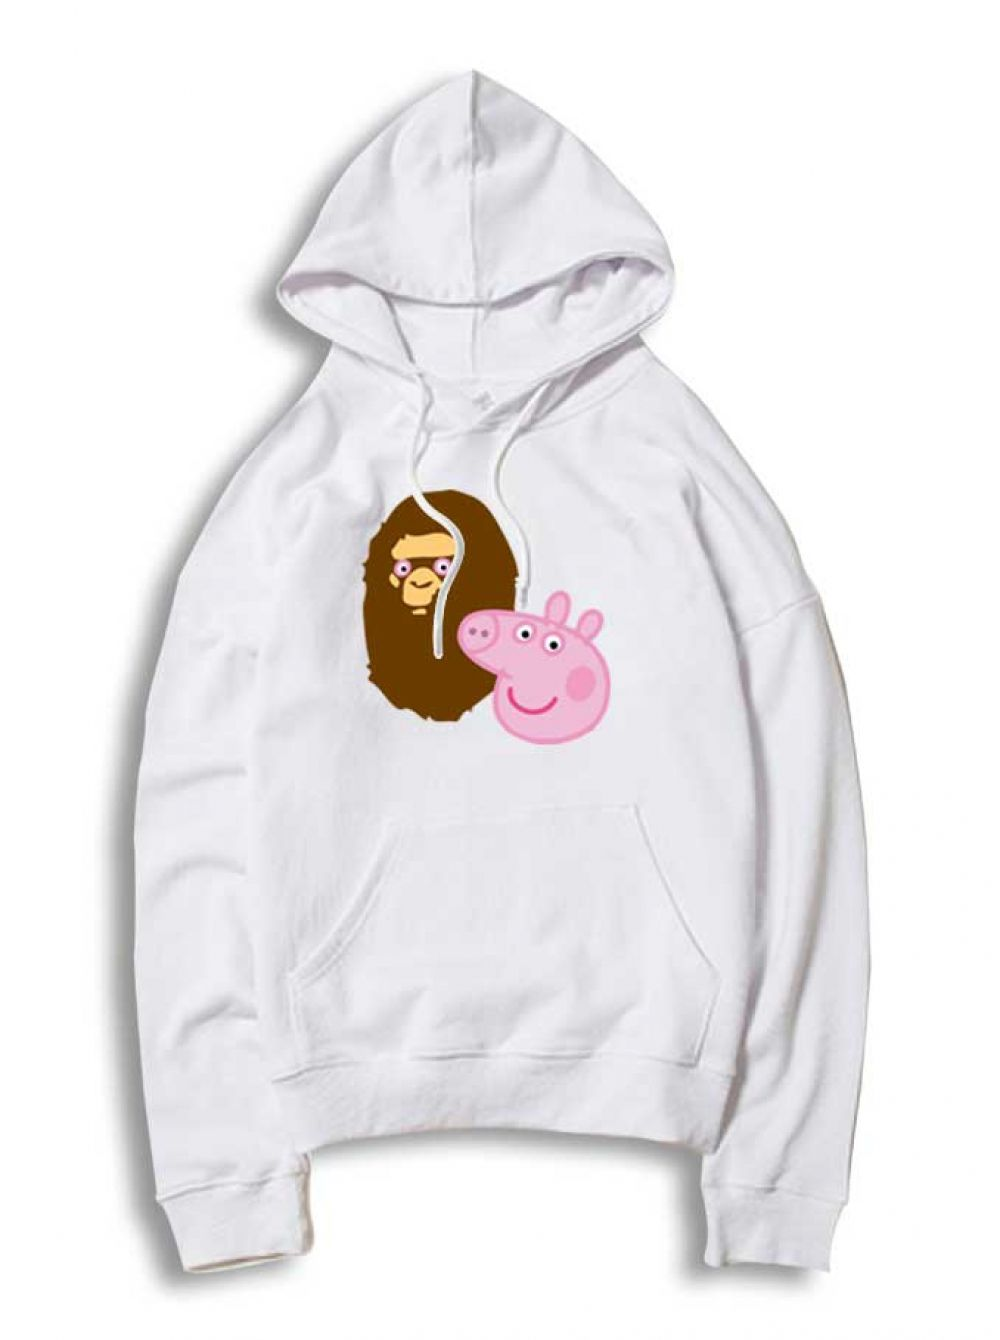 6b067228376 A Bathing Ape Bape Head X Peppa Pig Parody Hoodie   33.50  Tee  Hype   Outfits  Outfit  Hypebeast  fashion  shirt  Tees  Tops  Teen